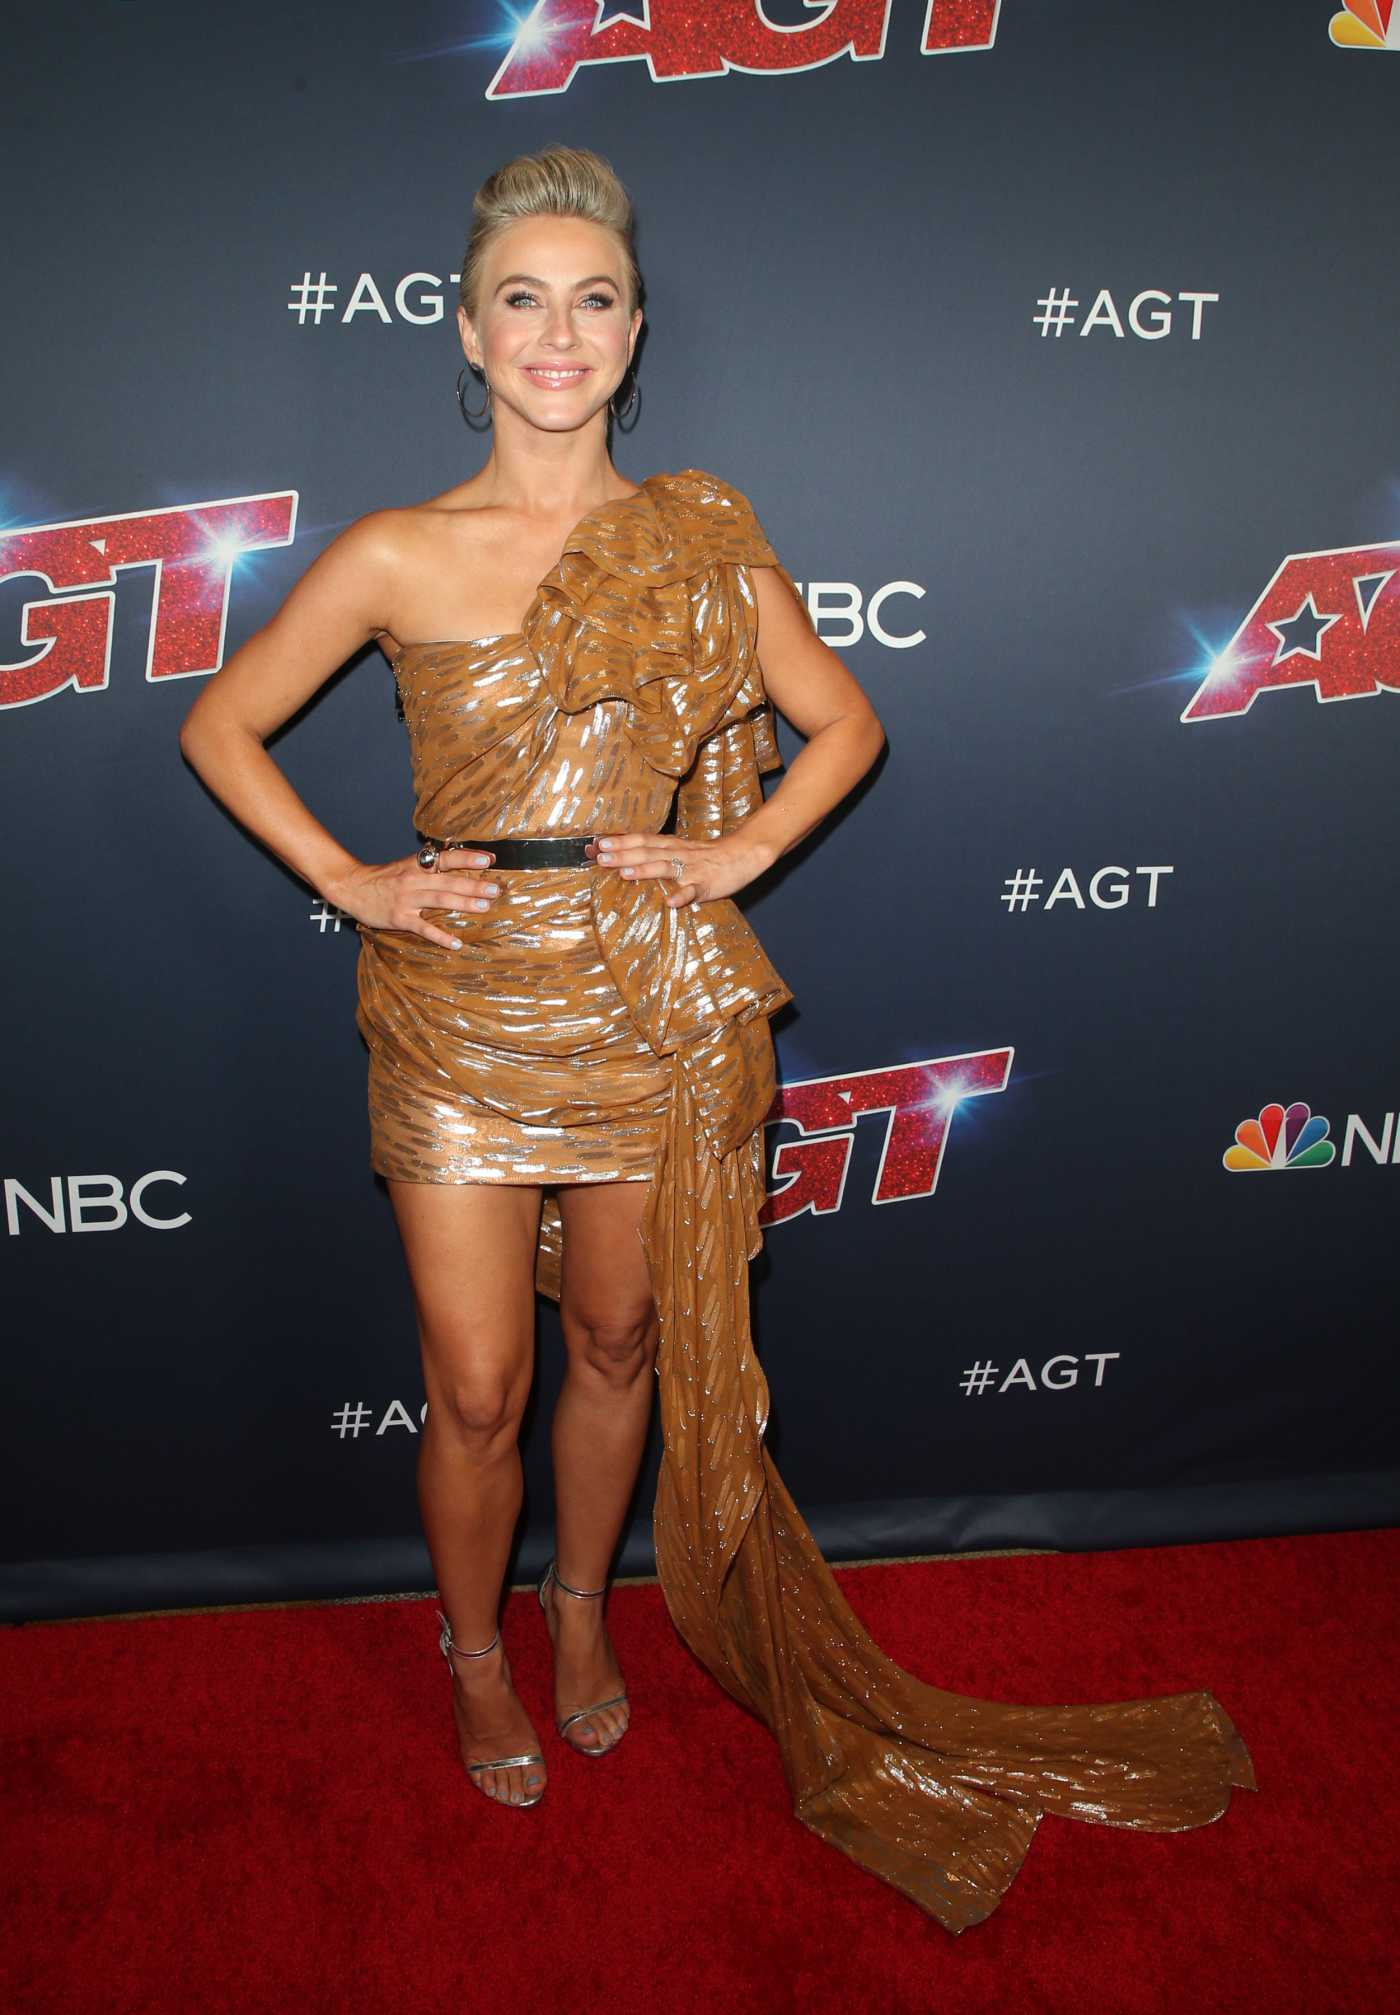 Julianne Hough Attends America's Got Talent Season 14 Live Show at Dolby Theatre in Hollywood 08/13/2019